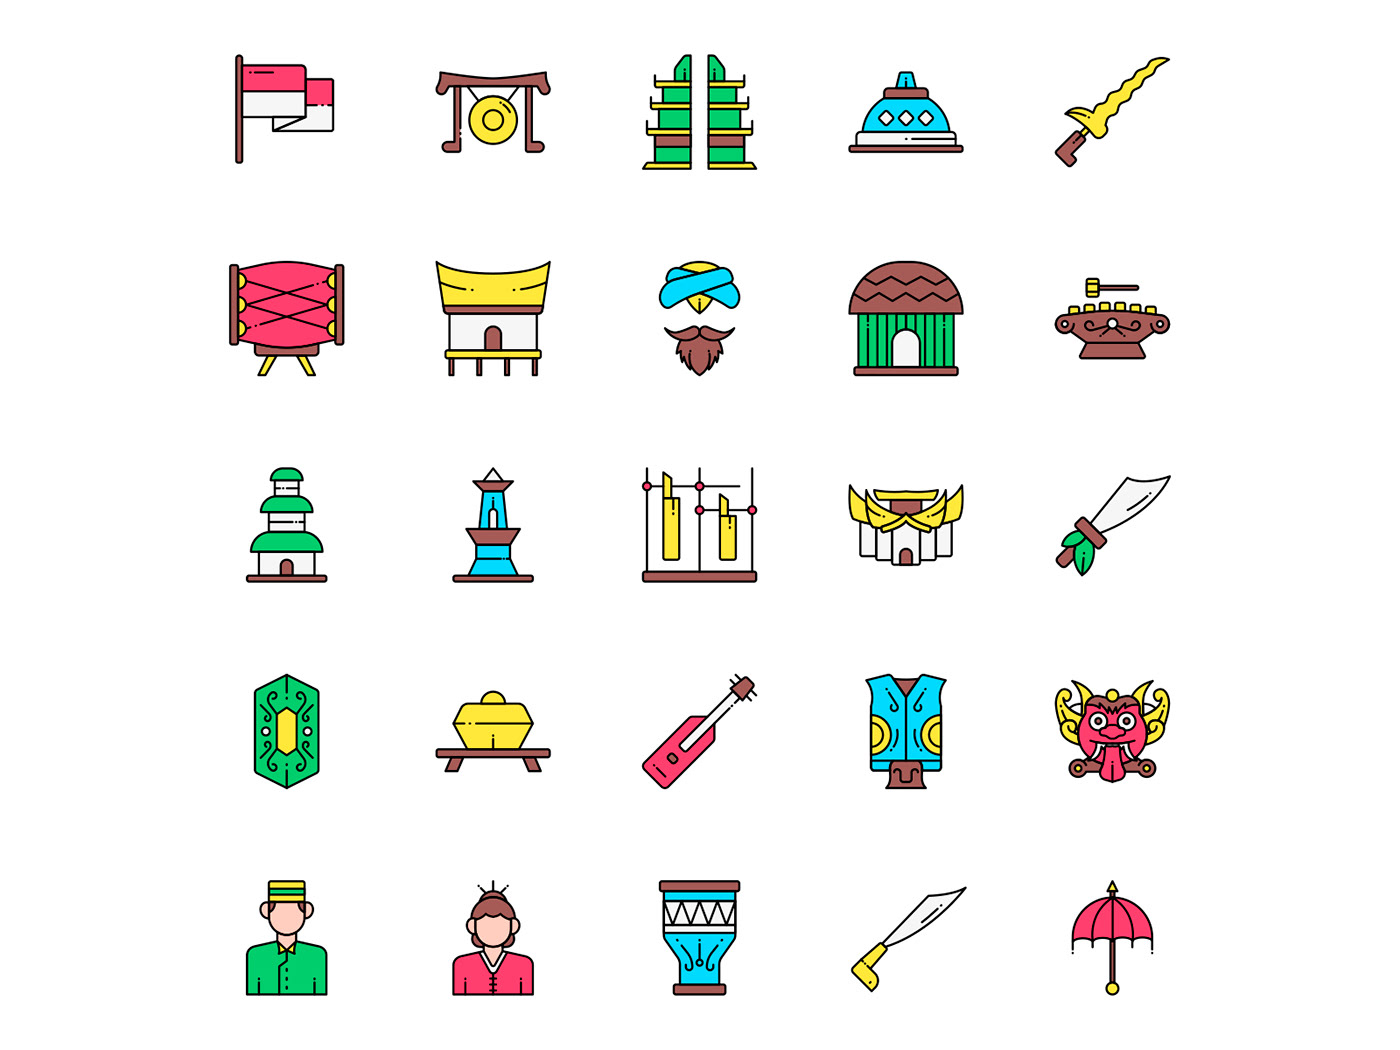 freebie icon design  icons download icons pack icons set indonesia indonesia icon  Indonesia Vector vector design vector icon